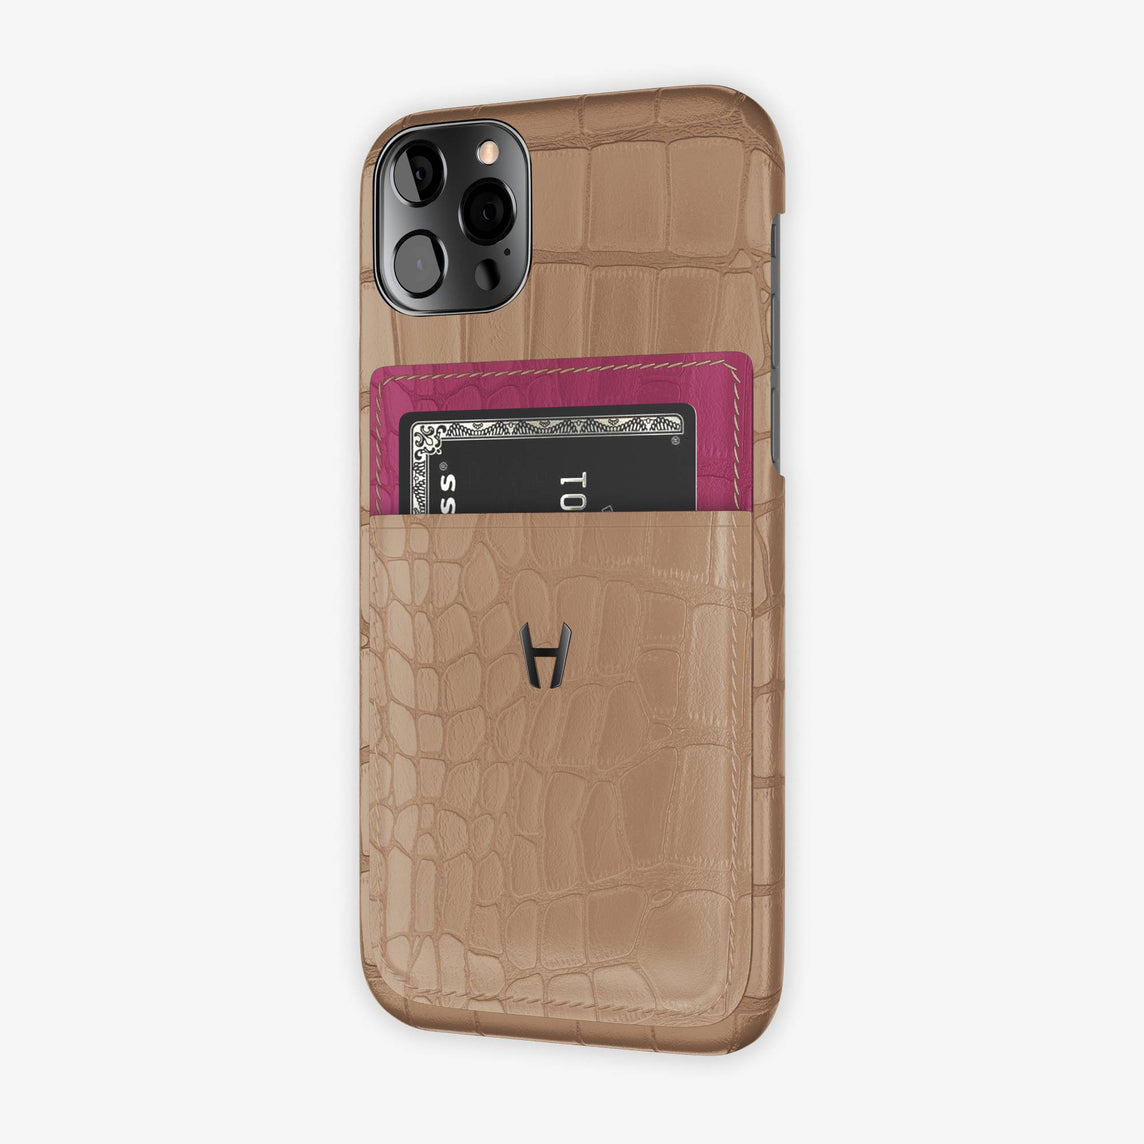 Alligator Pocket Case iPhone 12 & 12 Pro | Latte/Pink Fuchsia - Black